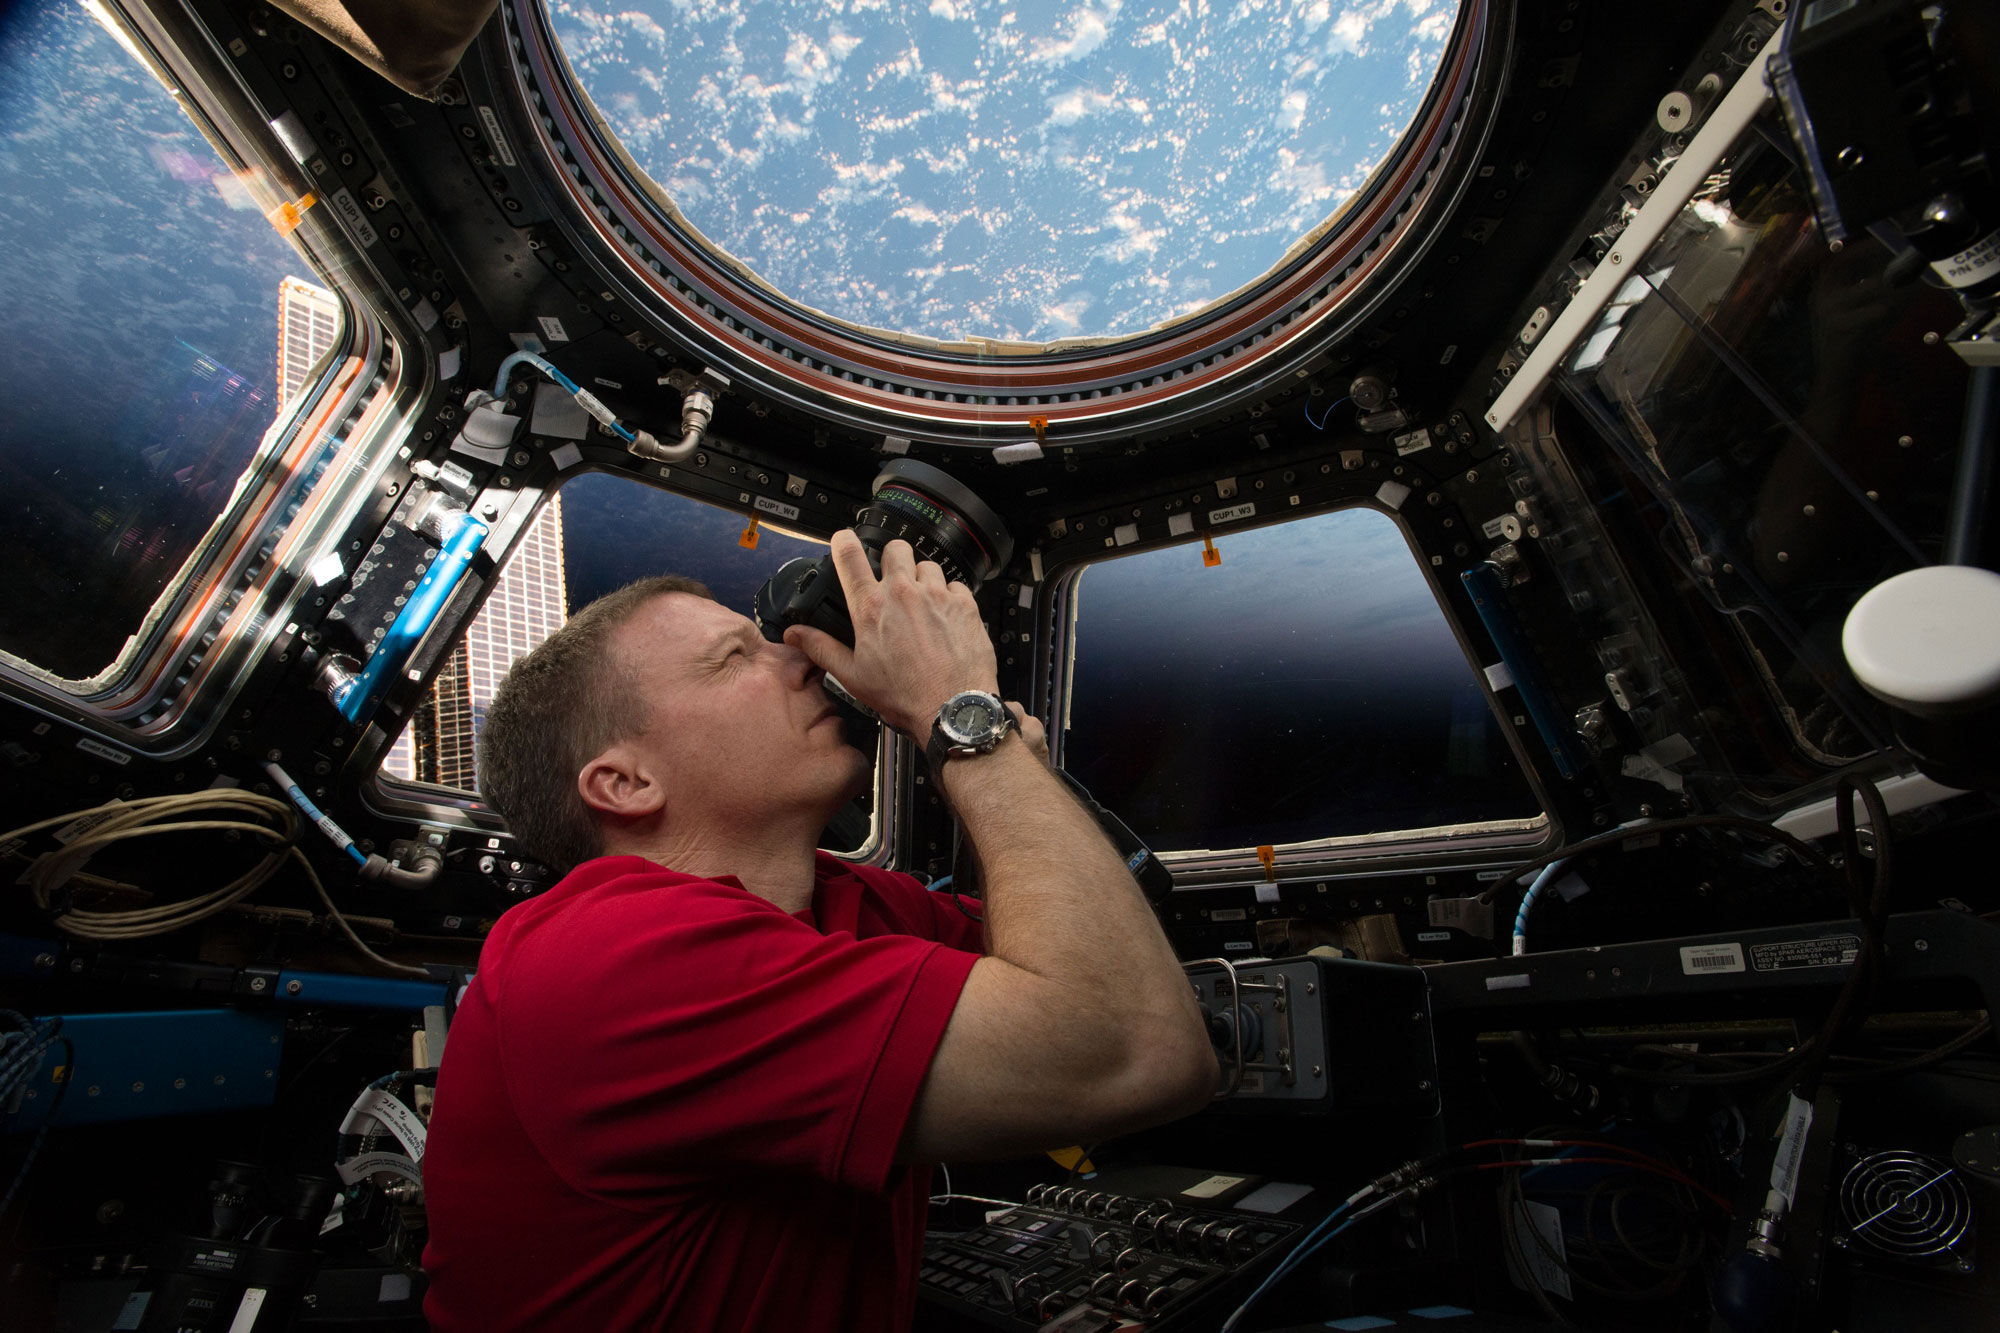 NASA astronaut and space photographer Terry Virts taking photos in the international space station's Cupola from the book View from Above, published by National Geographic, 2017. Courtesy of Terry Virts/NASA and National Geographic.